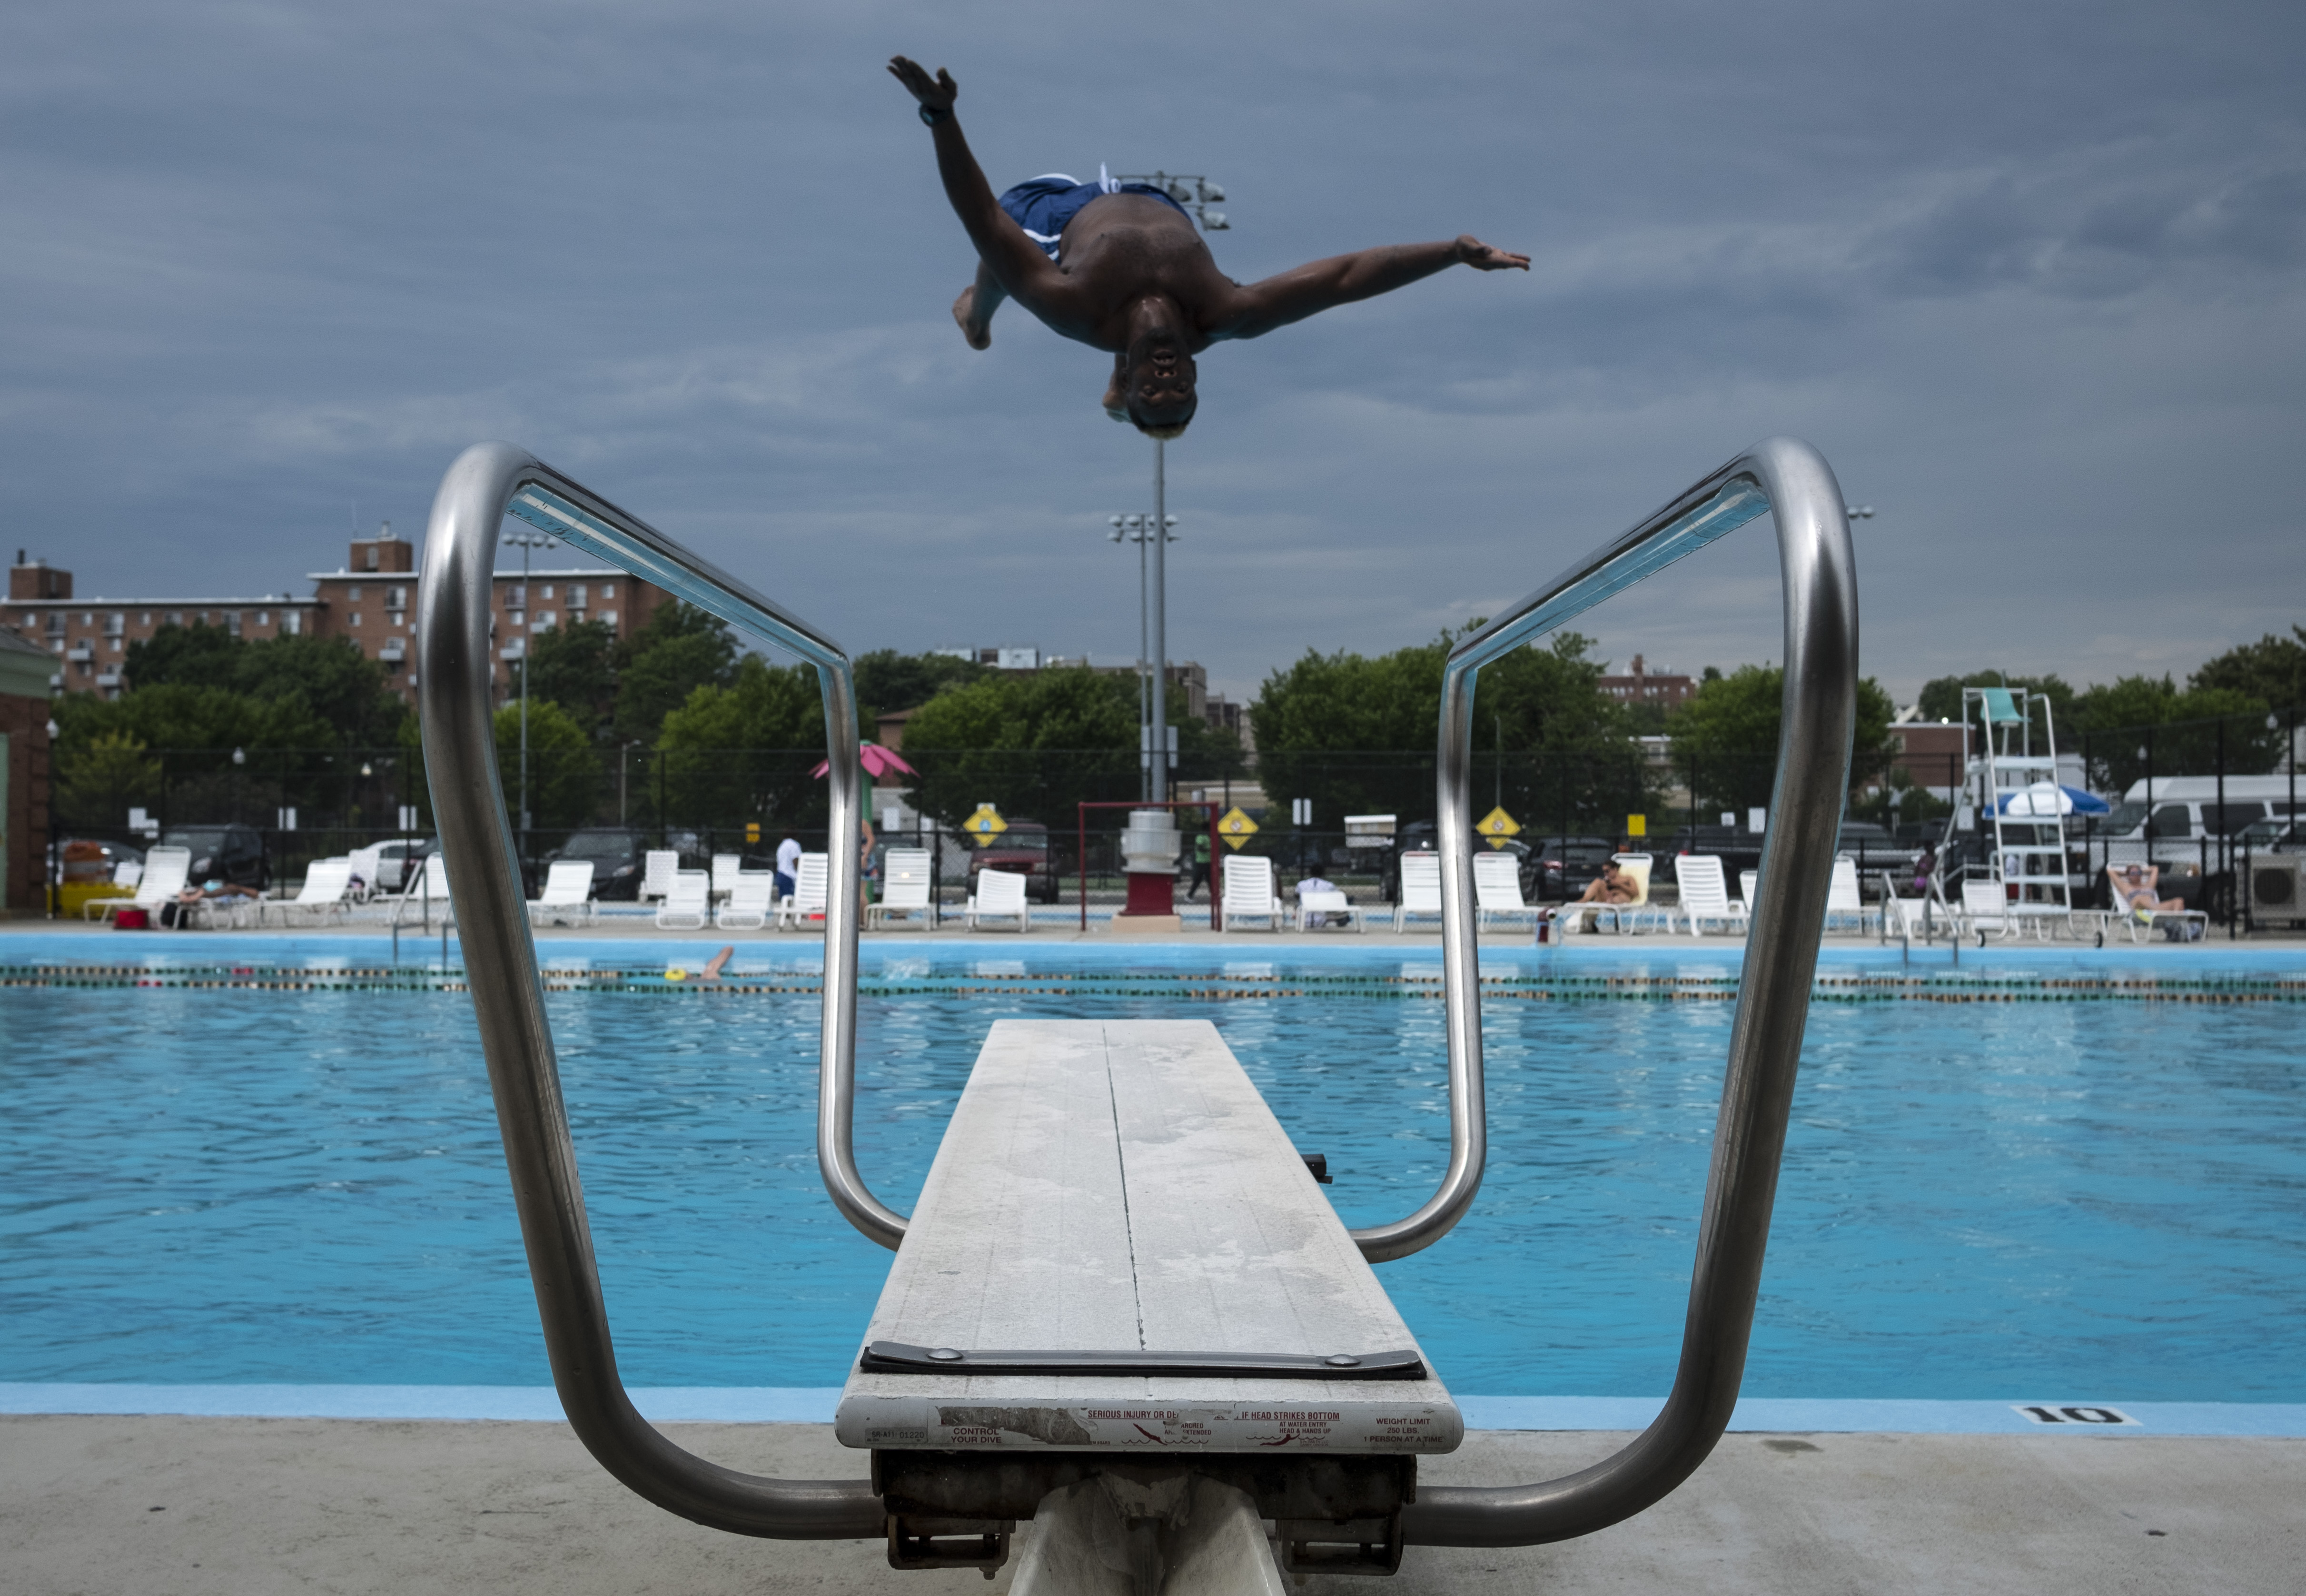 D.C.'s outdoor public pools open for the season this weekend. Here's where to find them